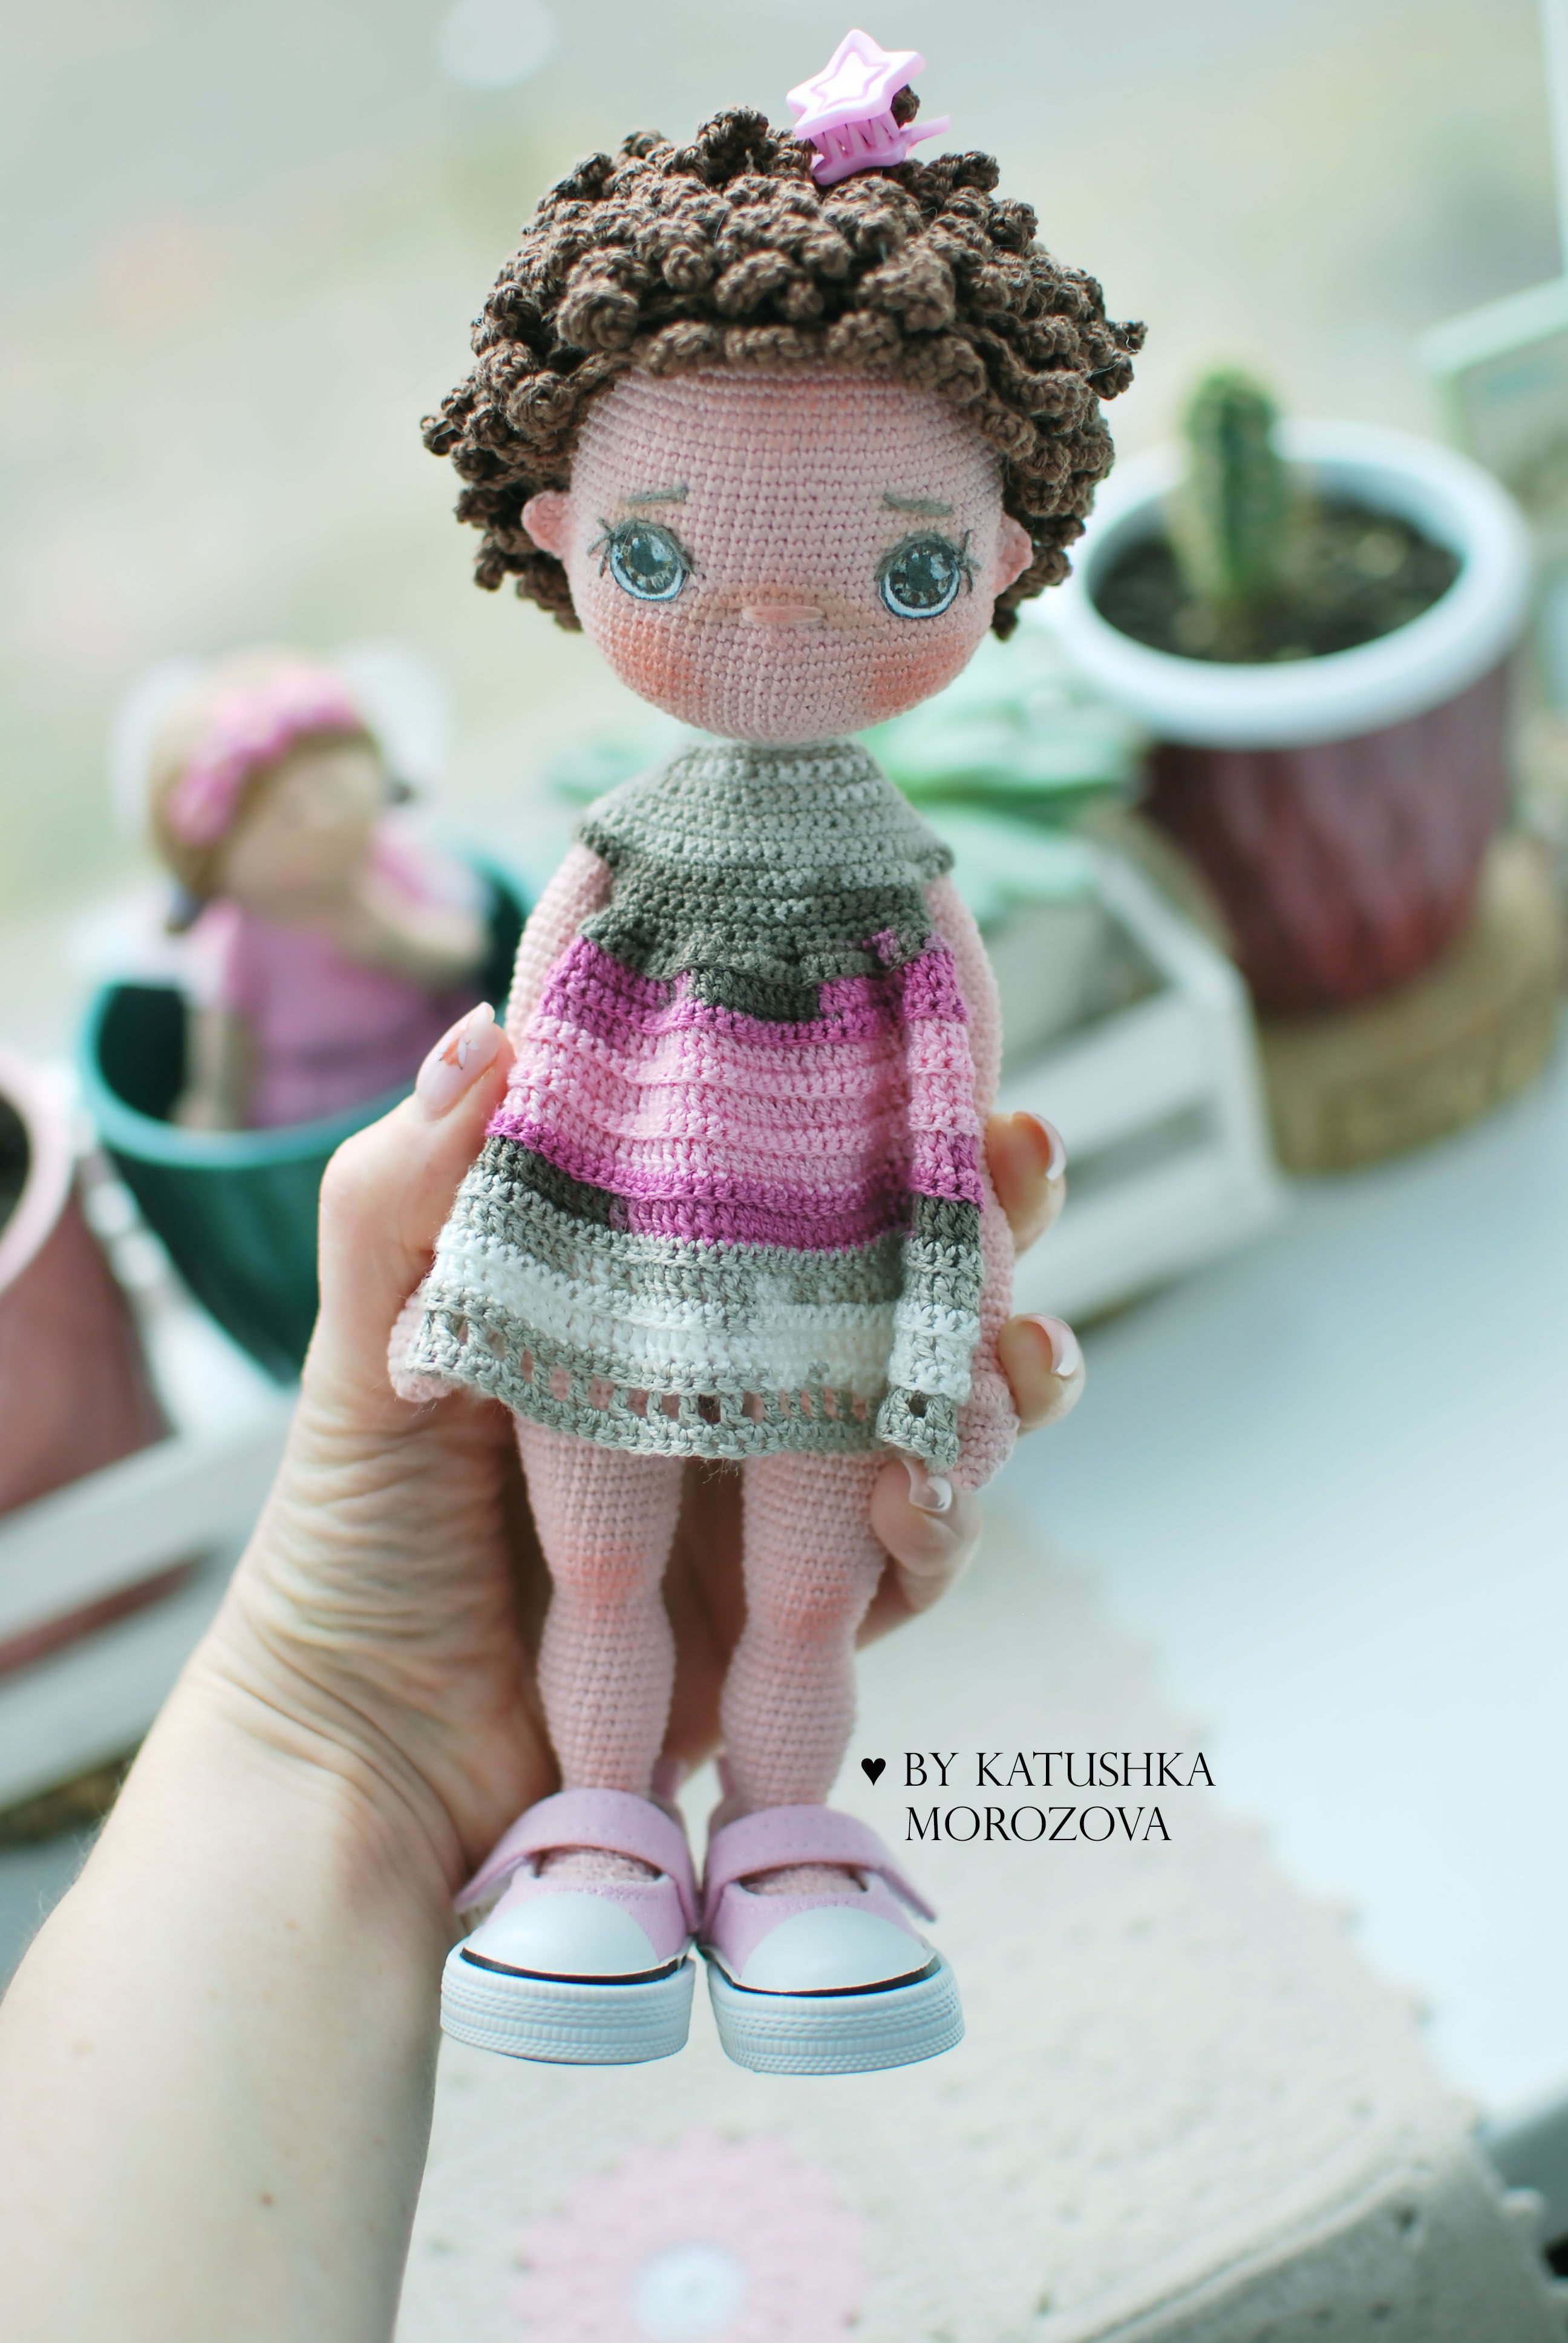 Fiber Art Craft: Female Girl Doll Base Amigurumi Crochet Doll ... | 3872x2592